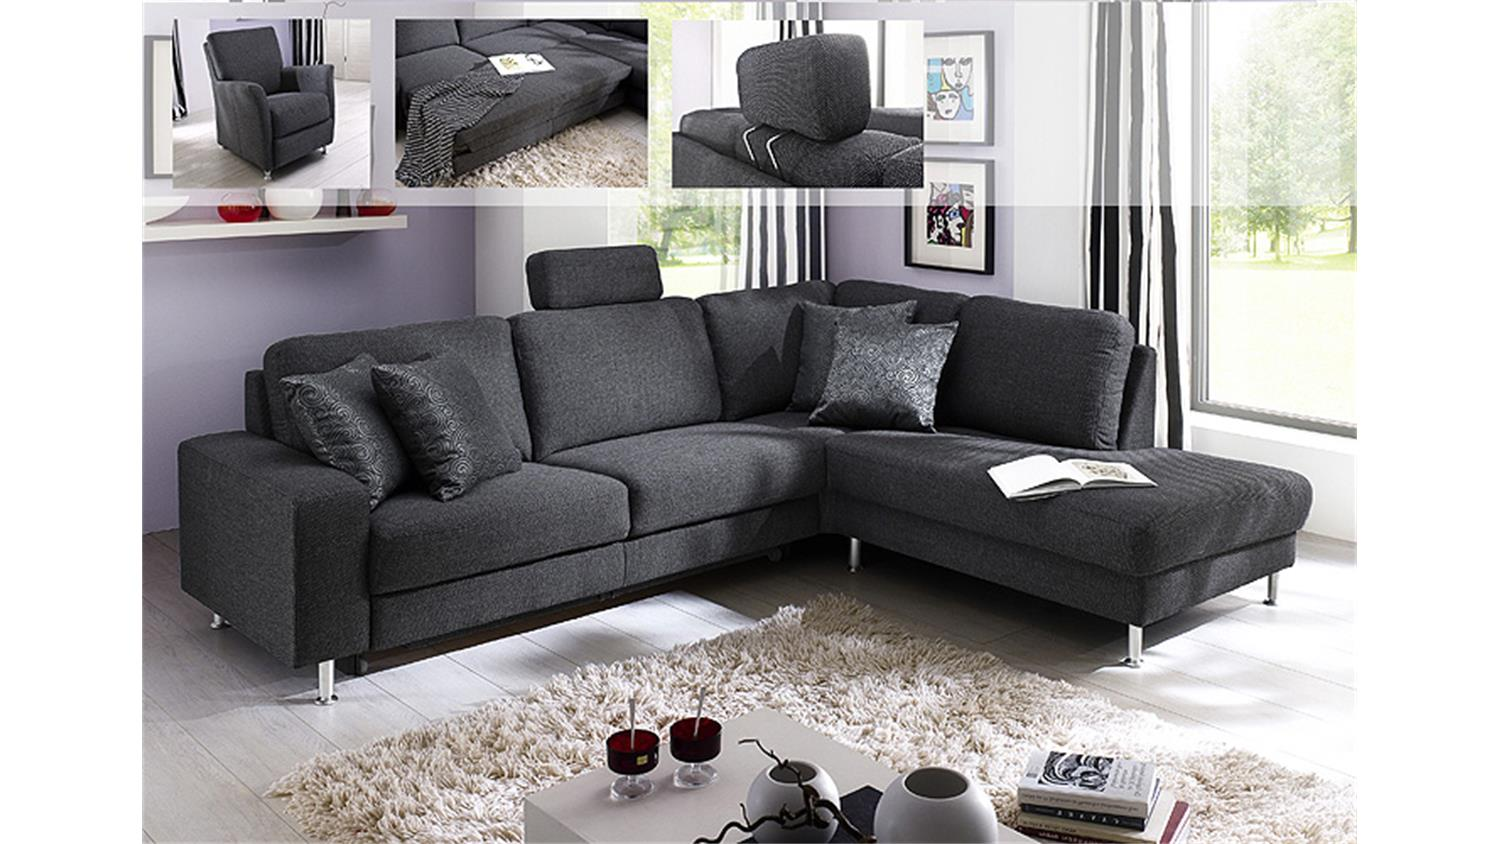 mmax schlafsofa schlafsofa mritz anthrazit bei pocode with mmax schlafsofa mmax schlafsofa. Black Bedroom Furniture Sets. Home Design Ideas